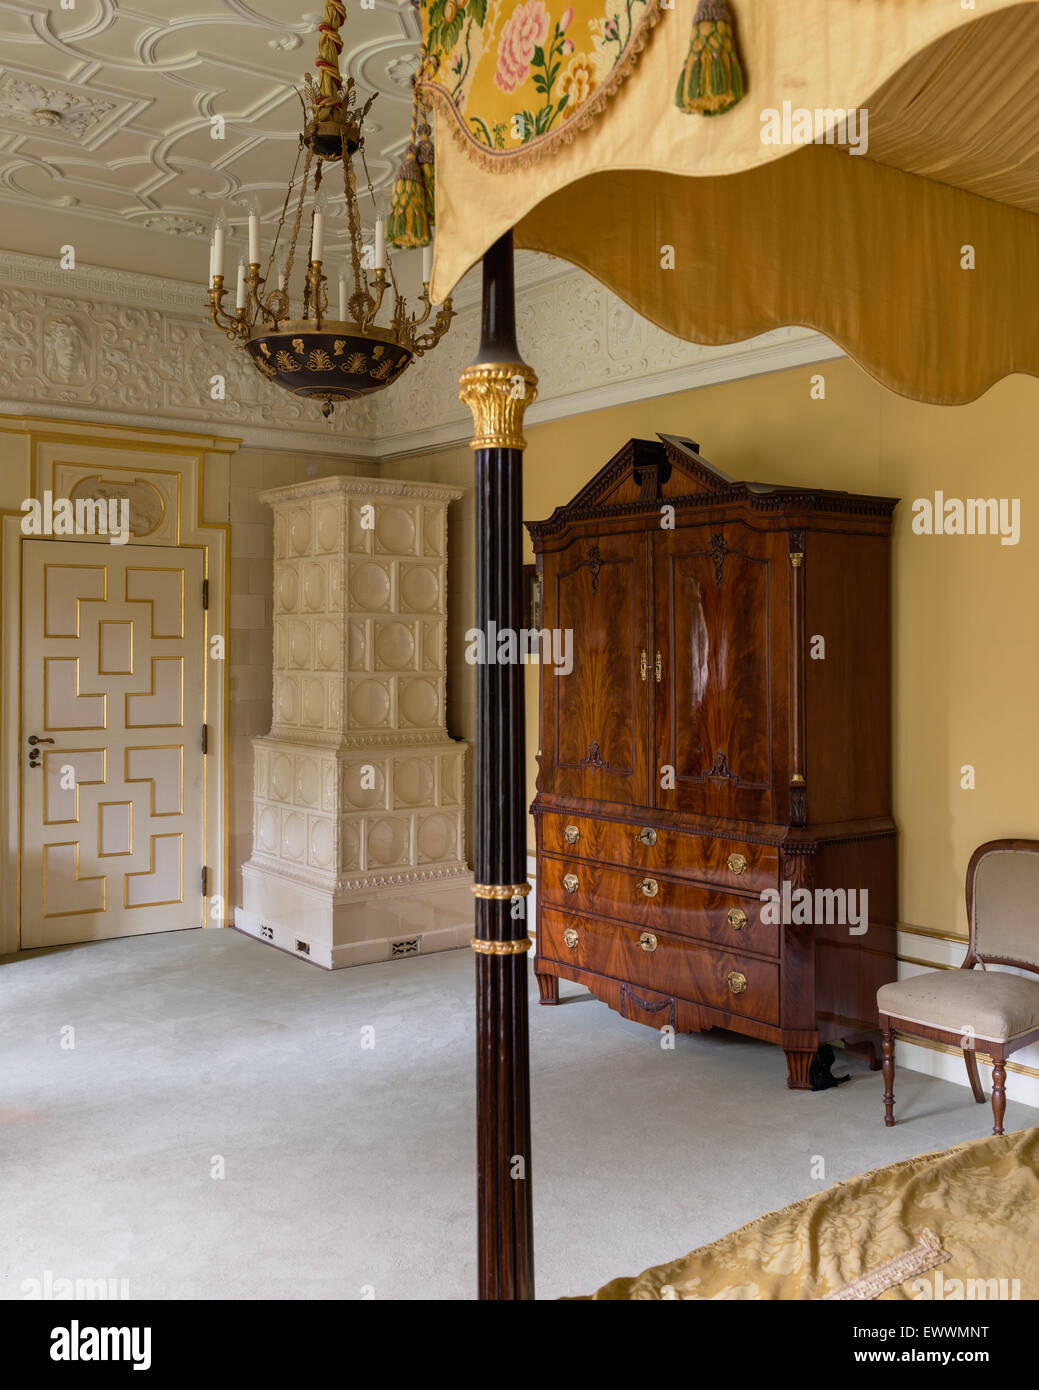 Antique armoire in bedroom with tiled stove, stucco ceiling and four poster bed - Stock Image